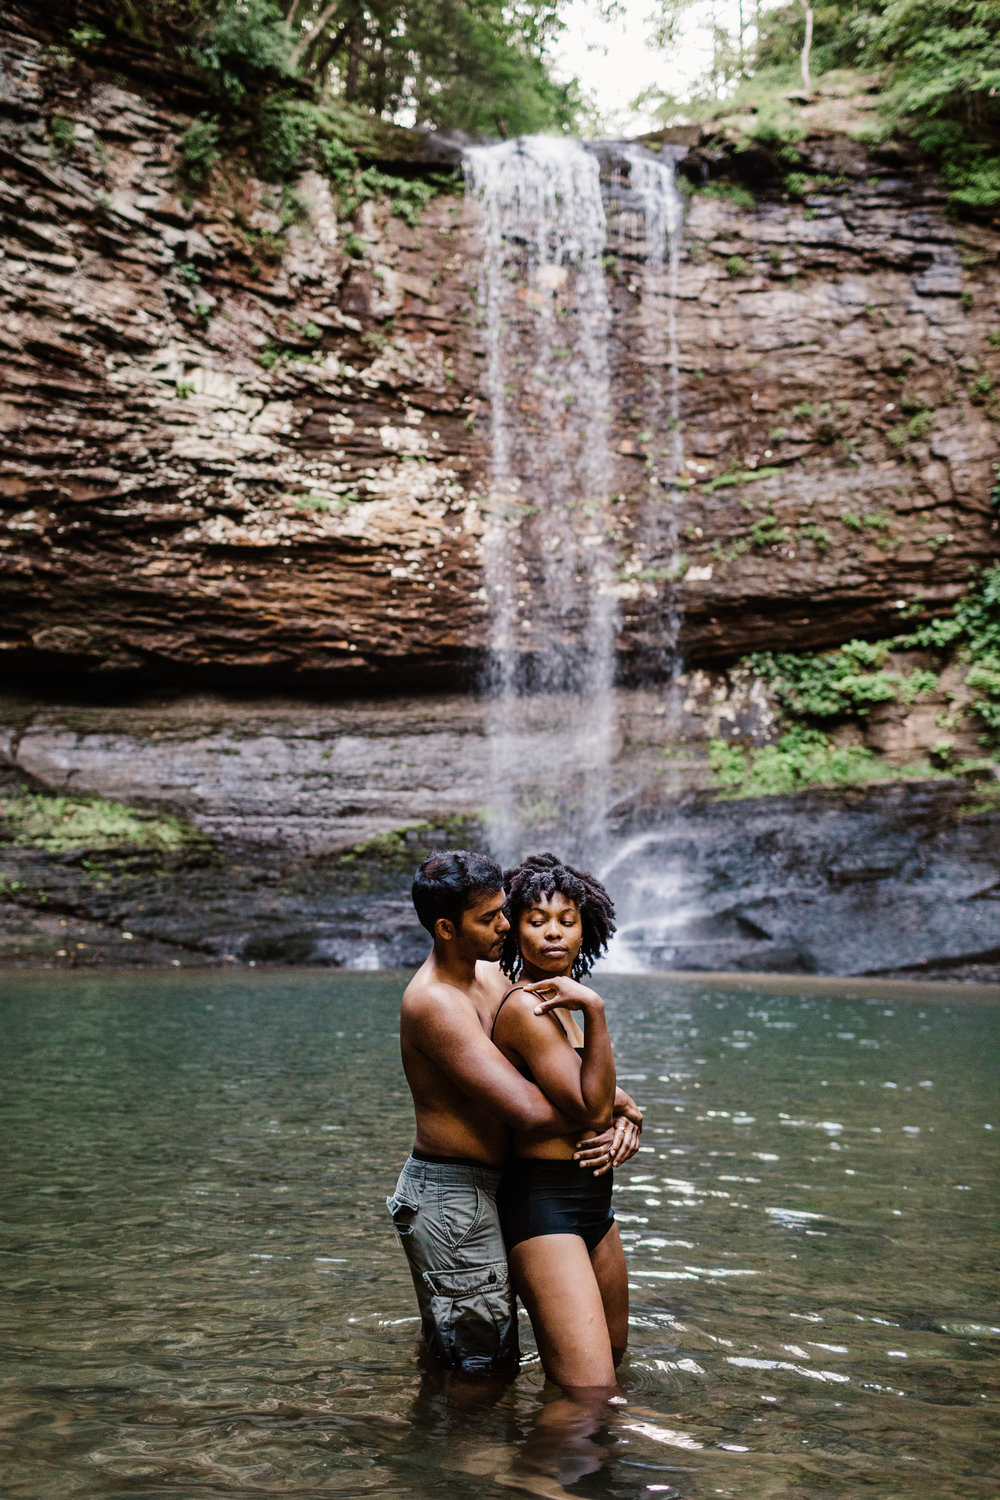 Swimming Waterfall Adventure Session in Blue Ridge Mountains | Asheville Elopement Photographer 2